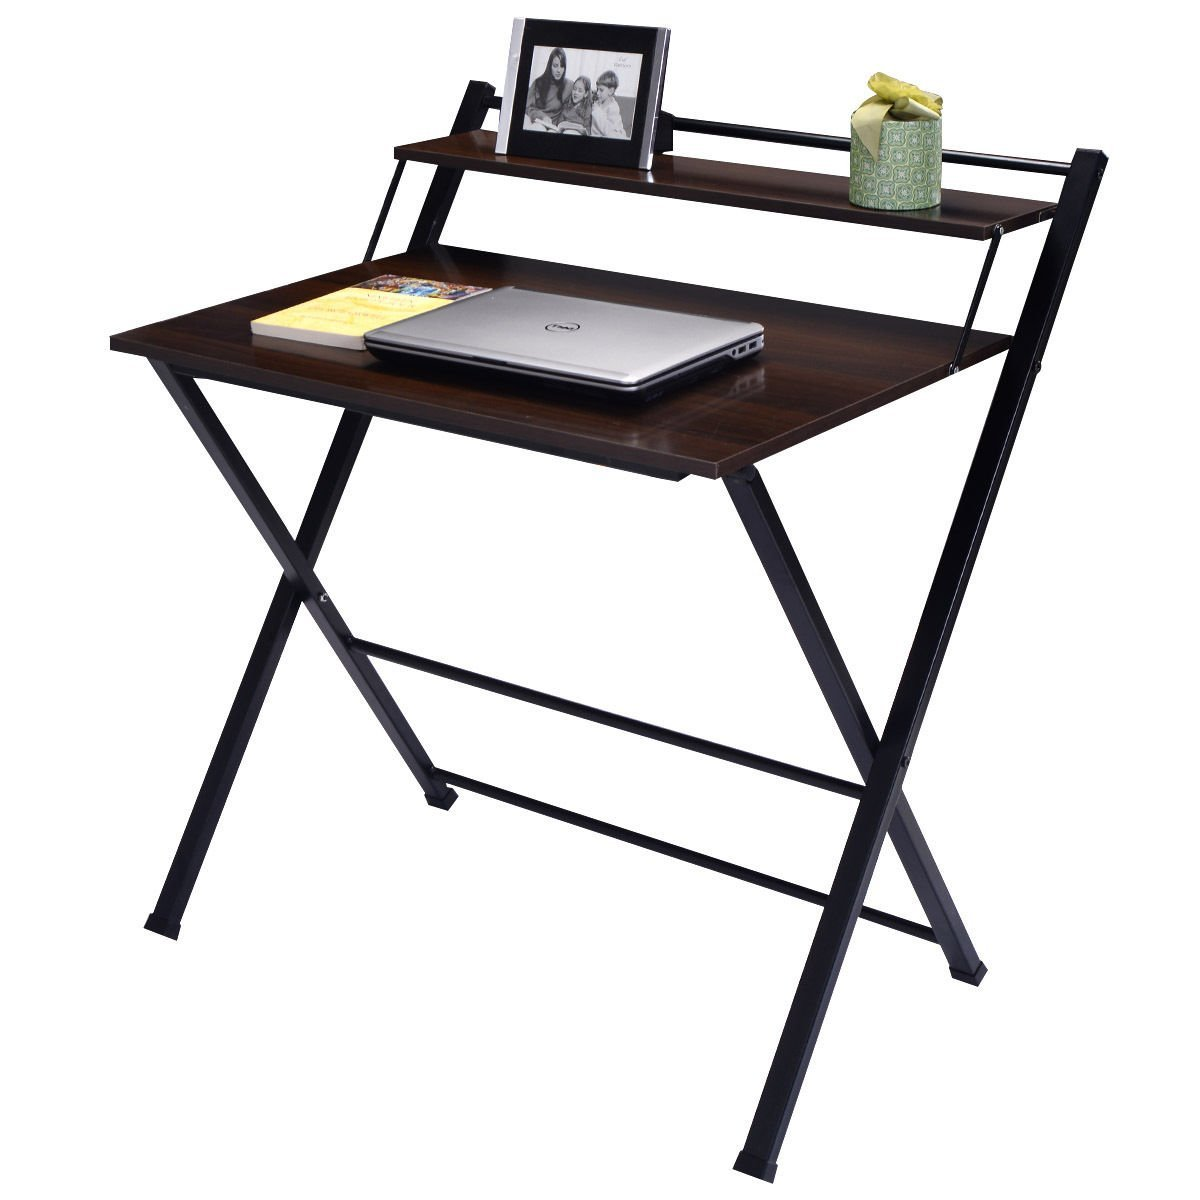 Beau Wakrays 2 Tier Folding Computer Desk Home Office Furniture Workstation Table  Student Study